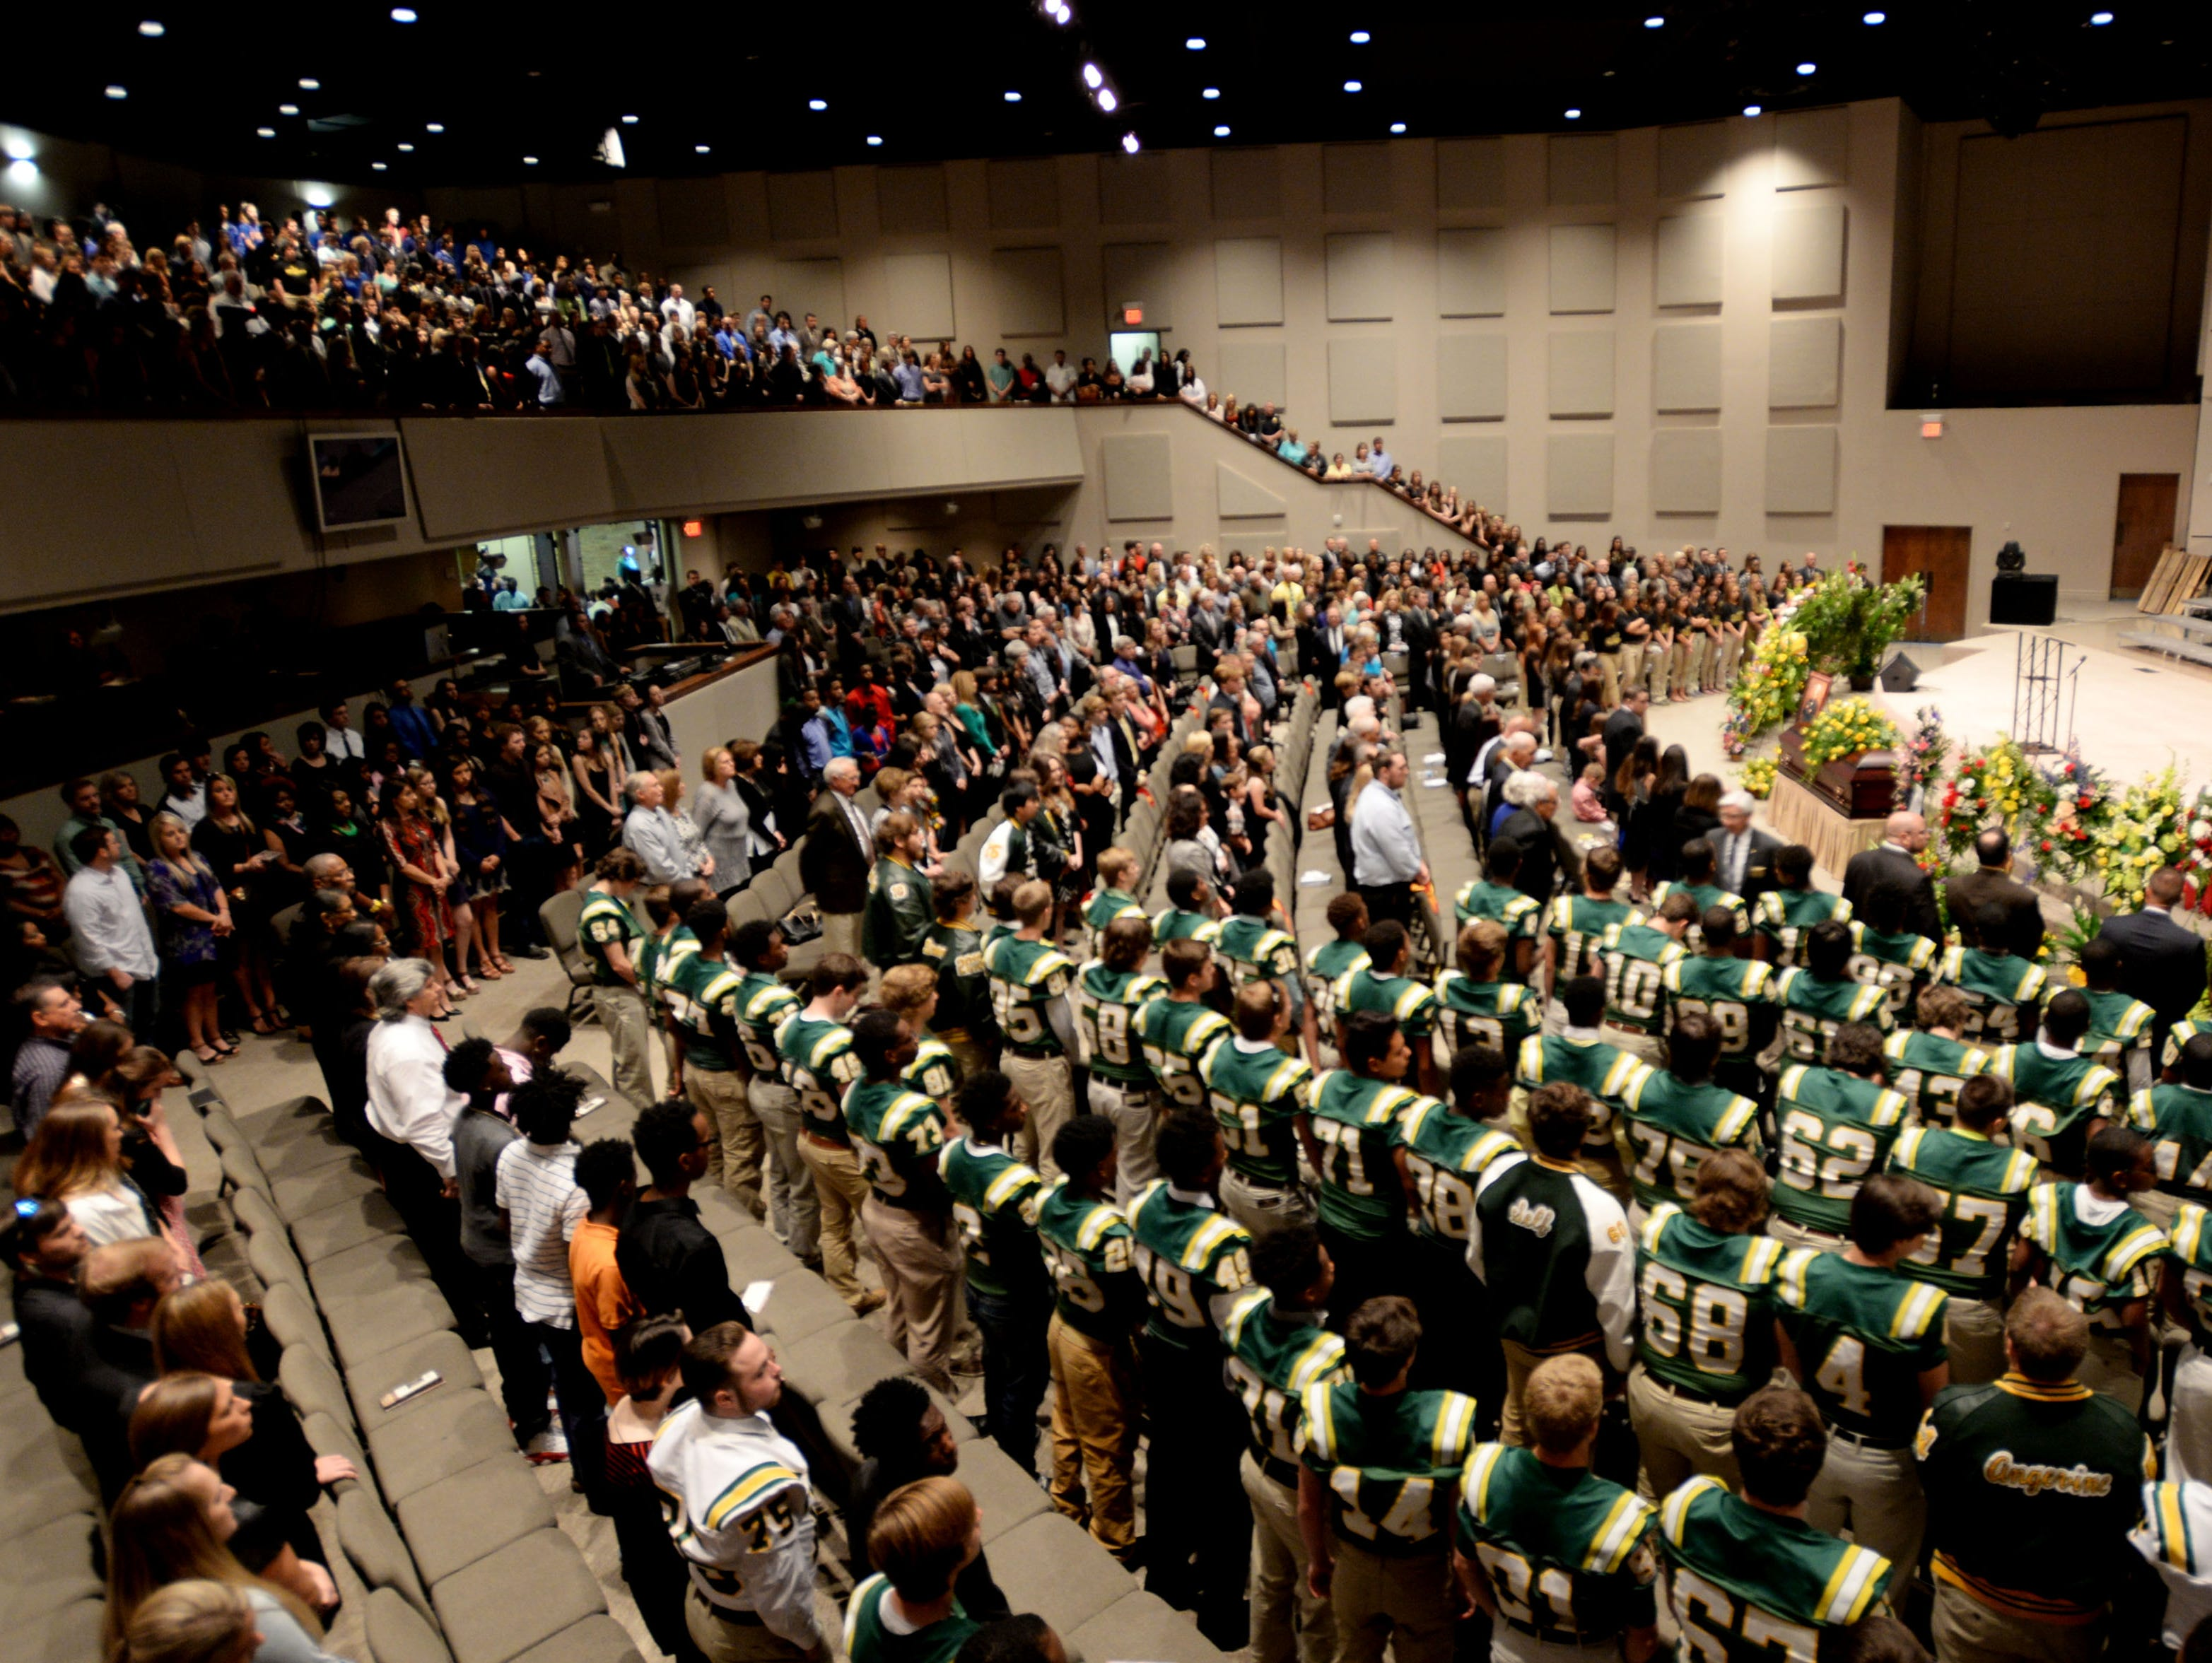 Calvary Baptist Church was filled with people for the Celebration of Life service for coach Richard Lary on Wednesday morning.